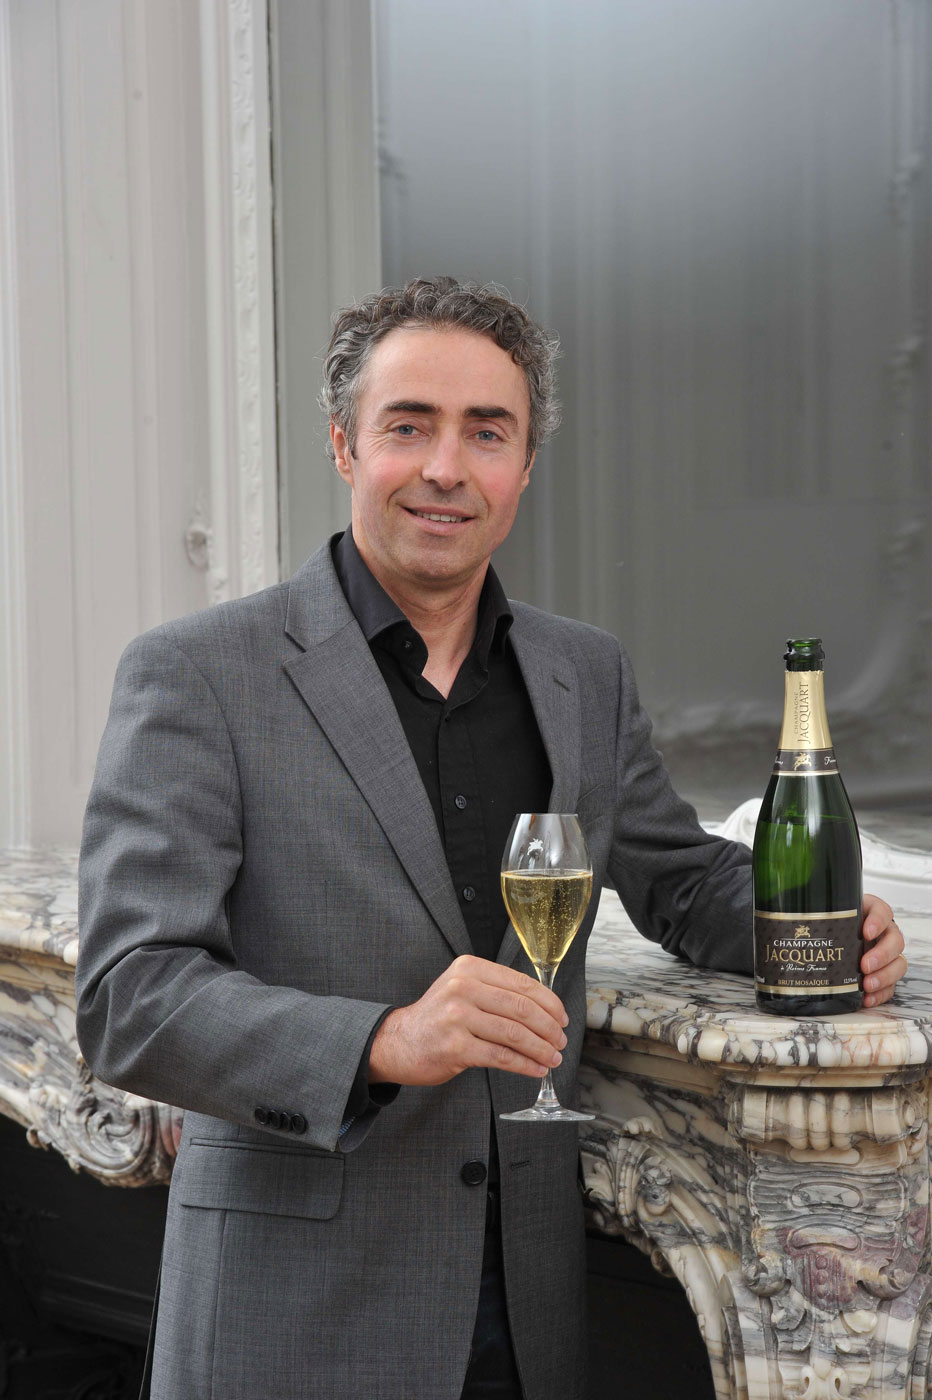 Laurent Reinteau, Managing Director Of Champagne Jacquart